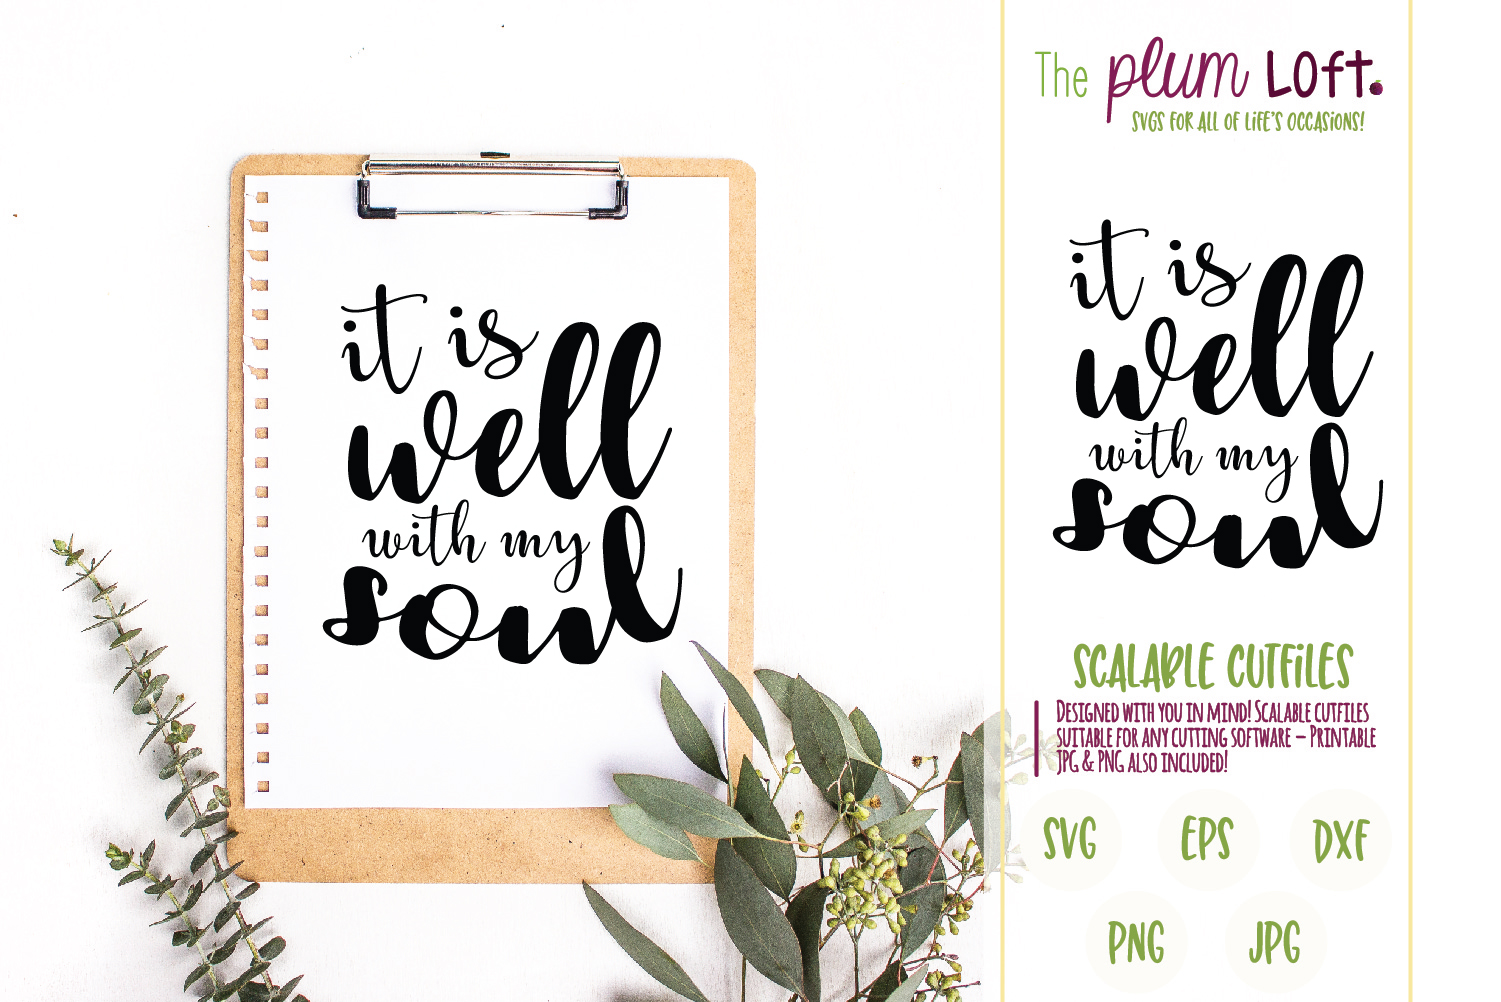 photo relating to It is Well With My Soul Printable identify It is properly with my soul - SVG